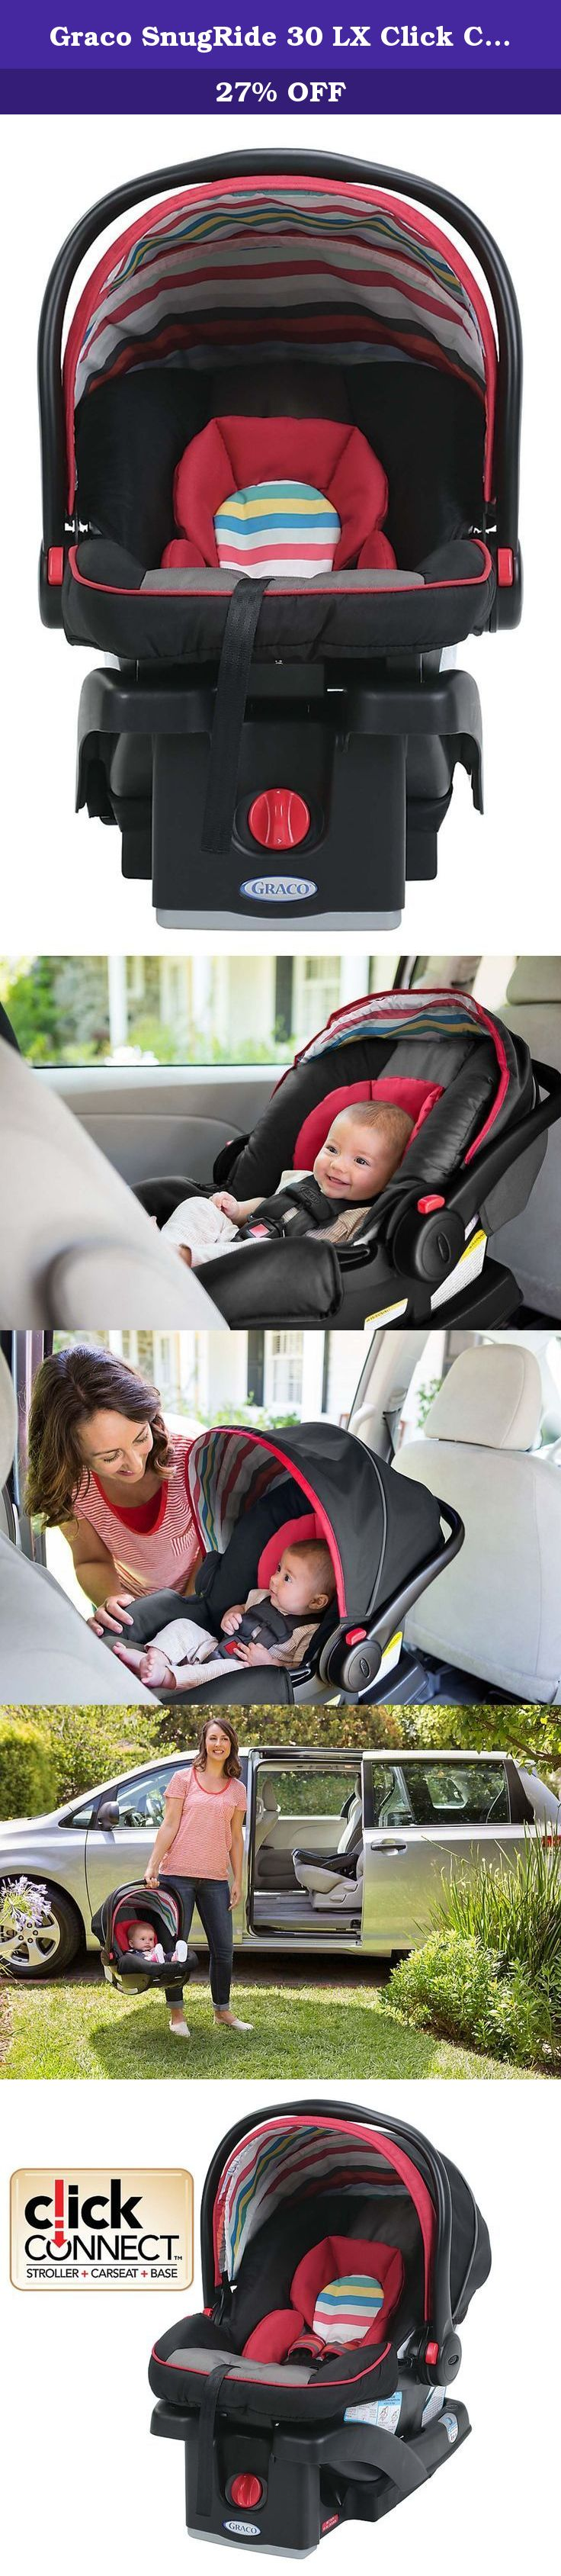 Graco SnugRide 30 35 Click Connect Car Seat Base Target